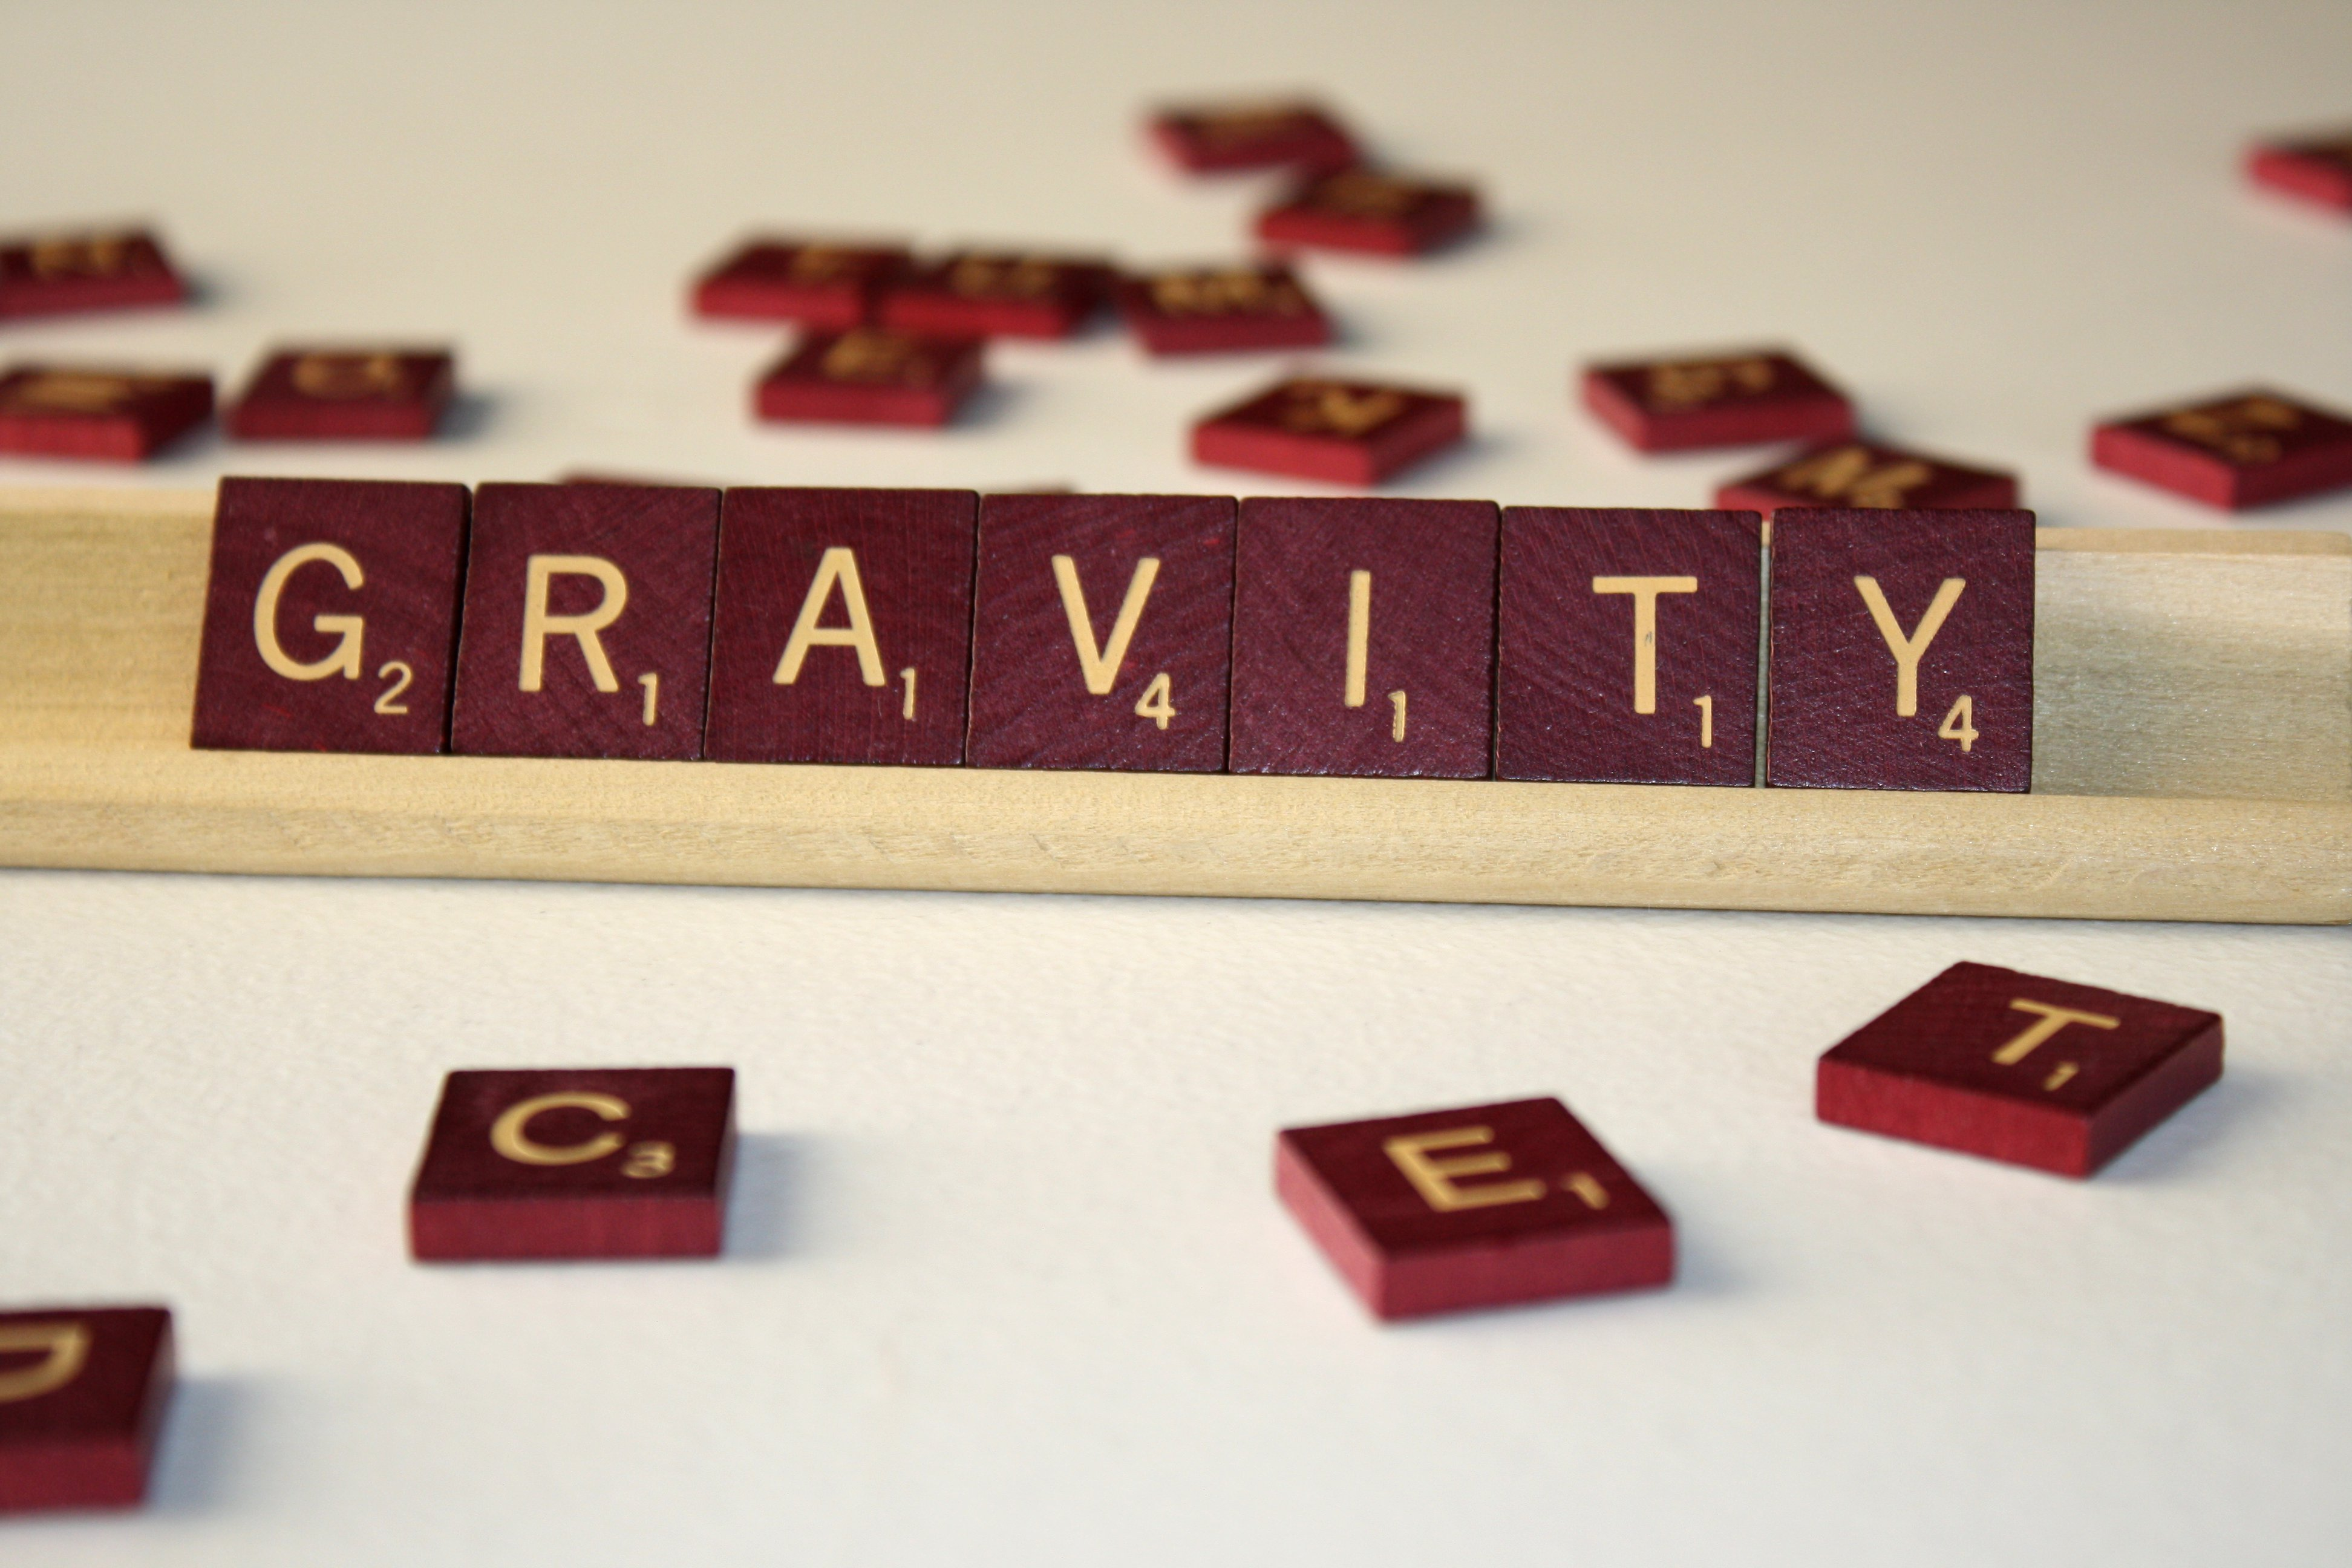 Gravity Free High Resolution Photo Of The Word Gravity